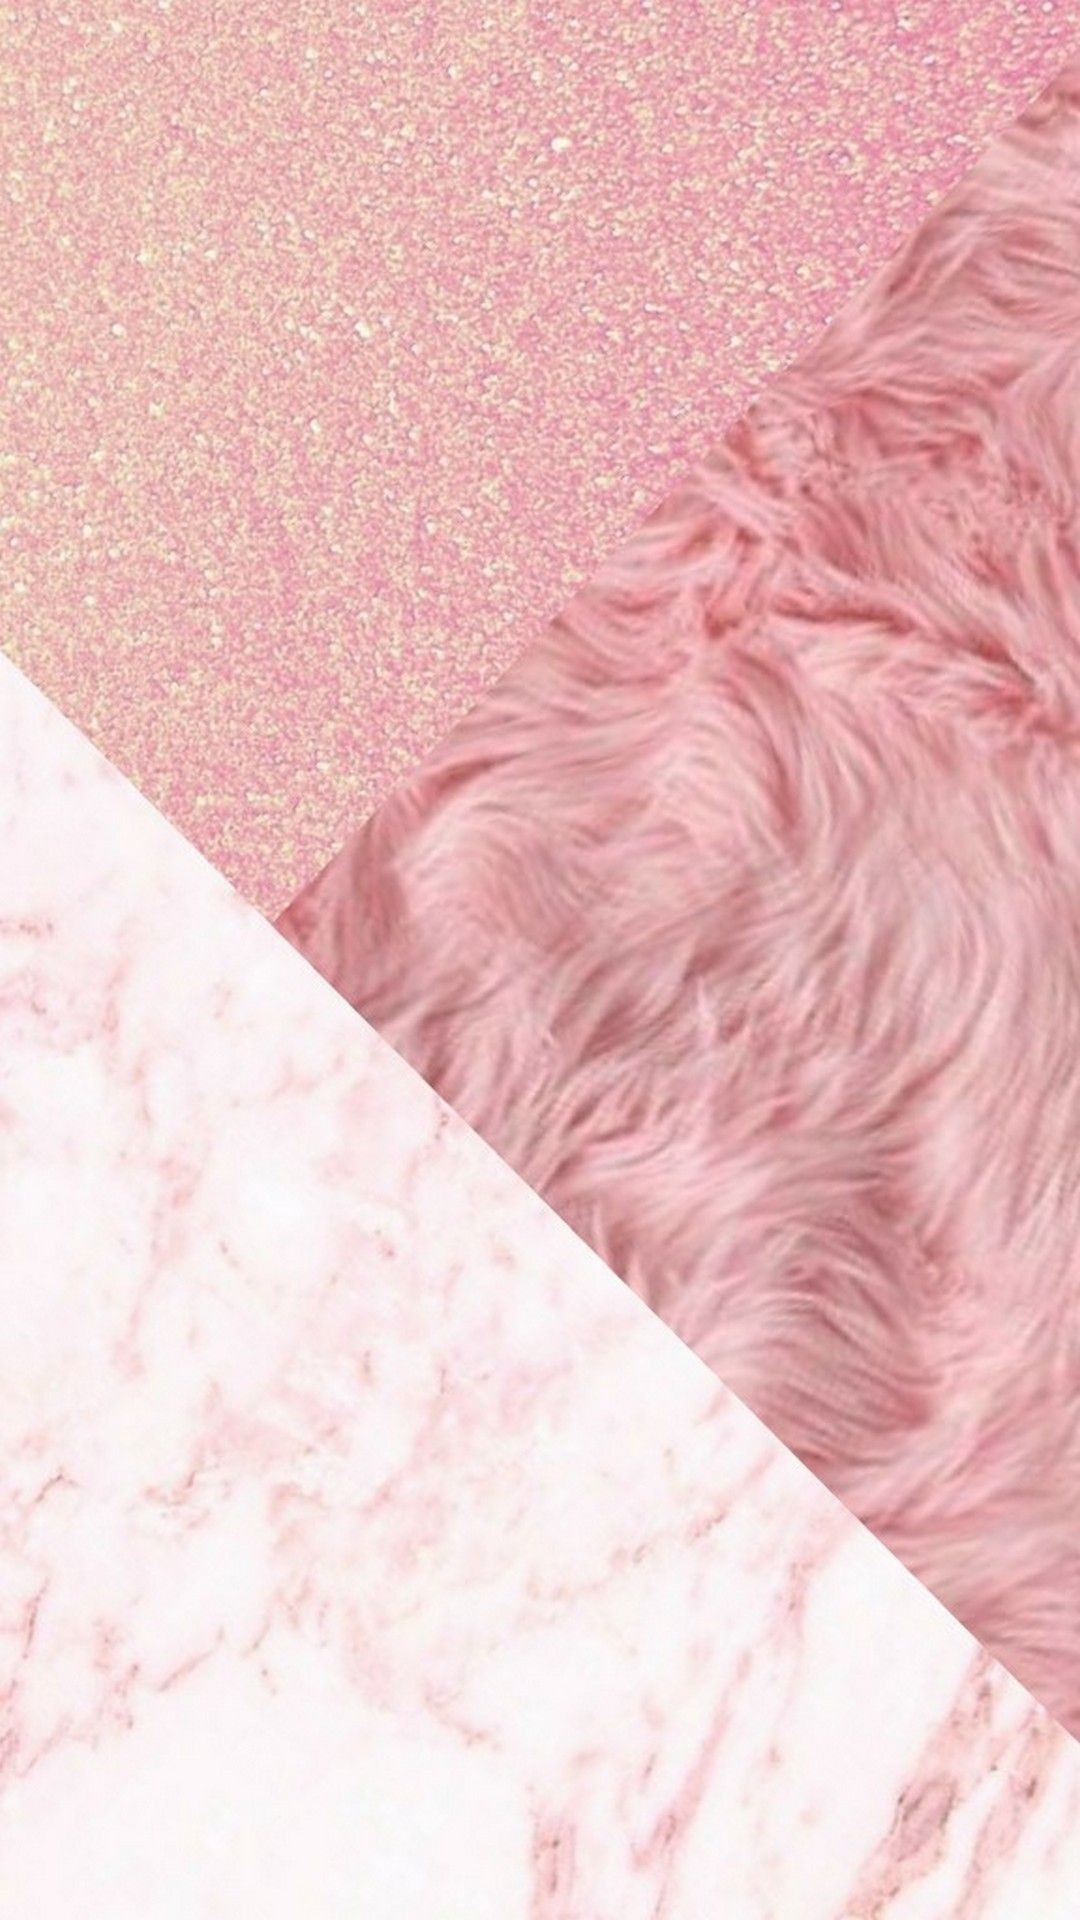 Rose gold wallpapers 73 background pictures - Rose gold glitter iphone wallpaper ...